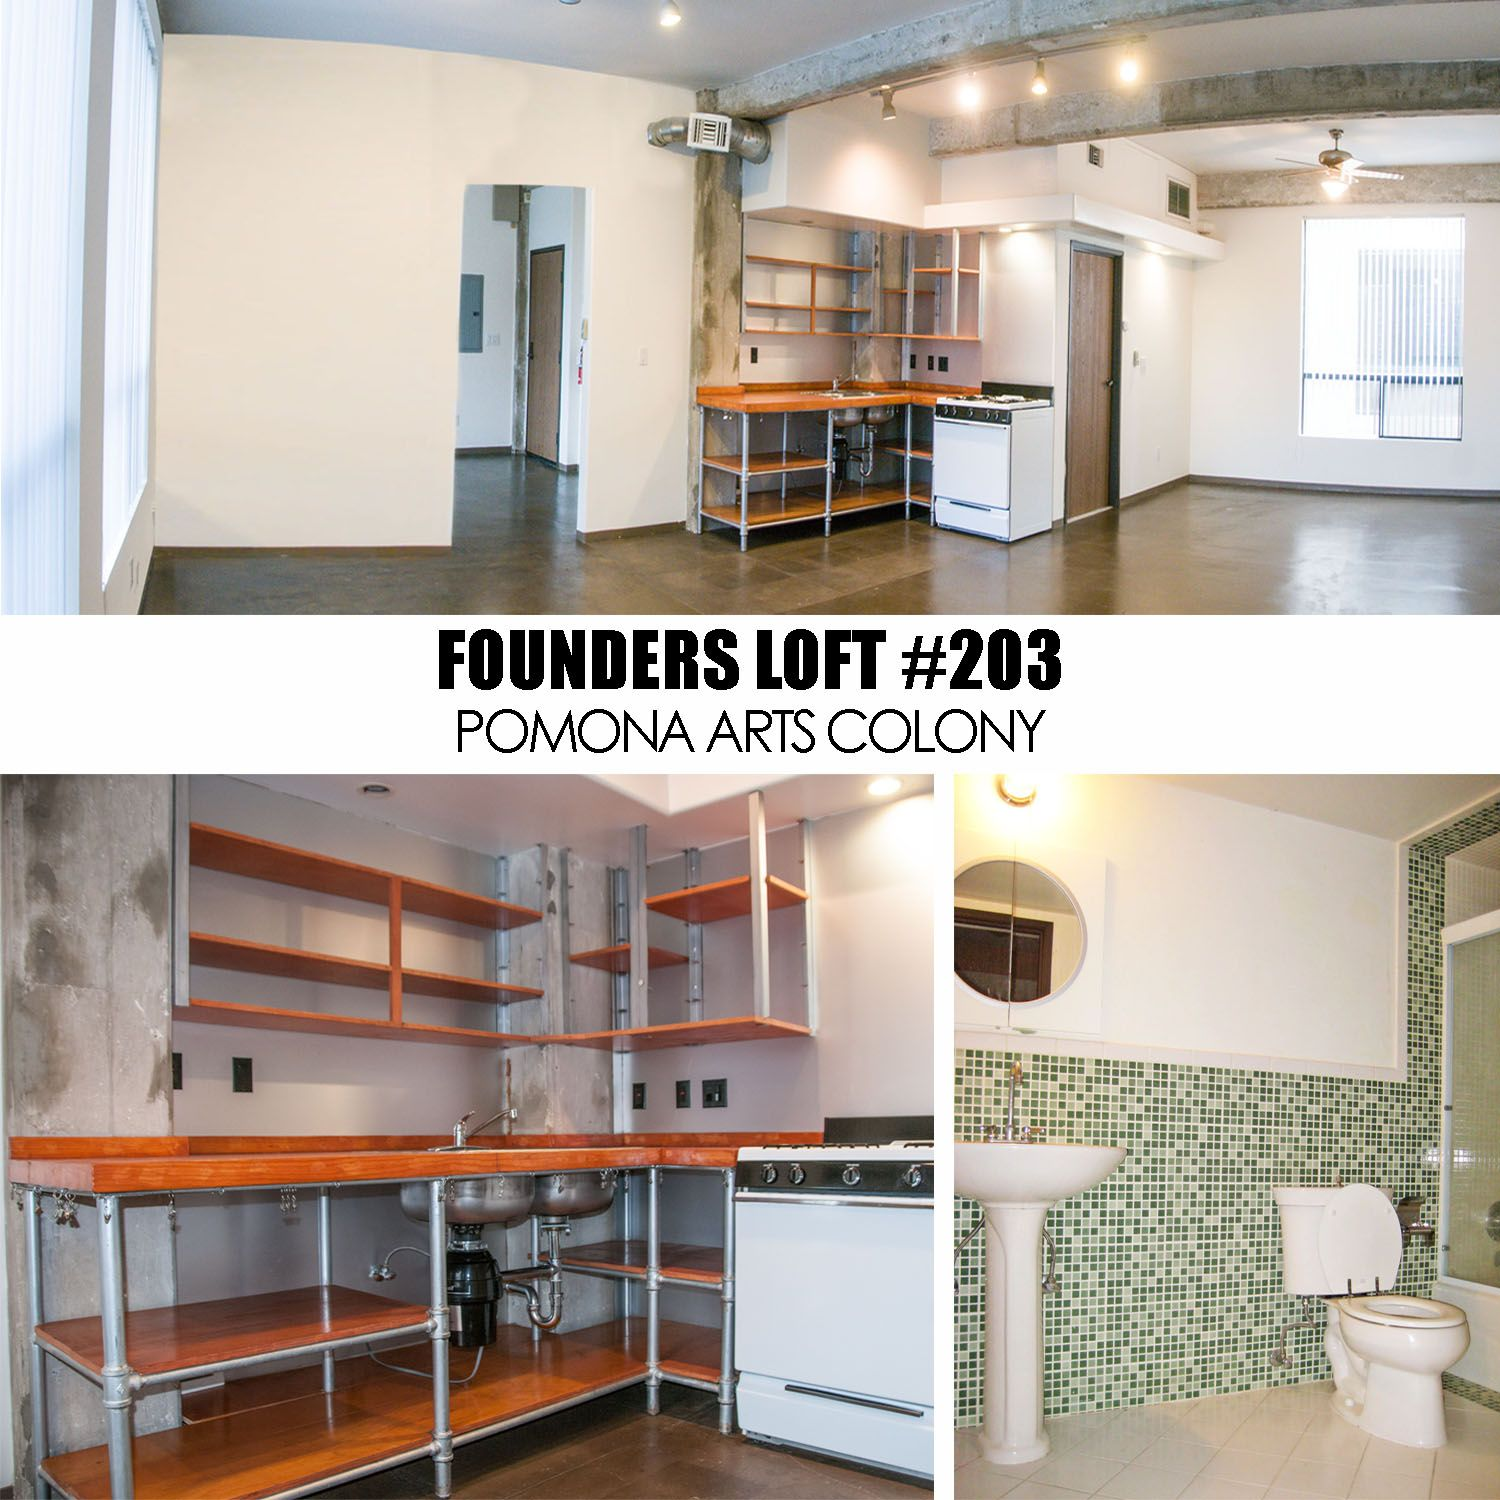 Loft For Rent Live Work Downtown Pomona Inland Empire Los Angeles County Southern California West Coast Artist Studio Lease